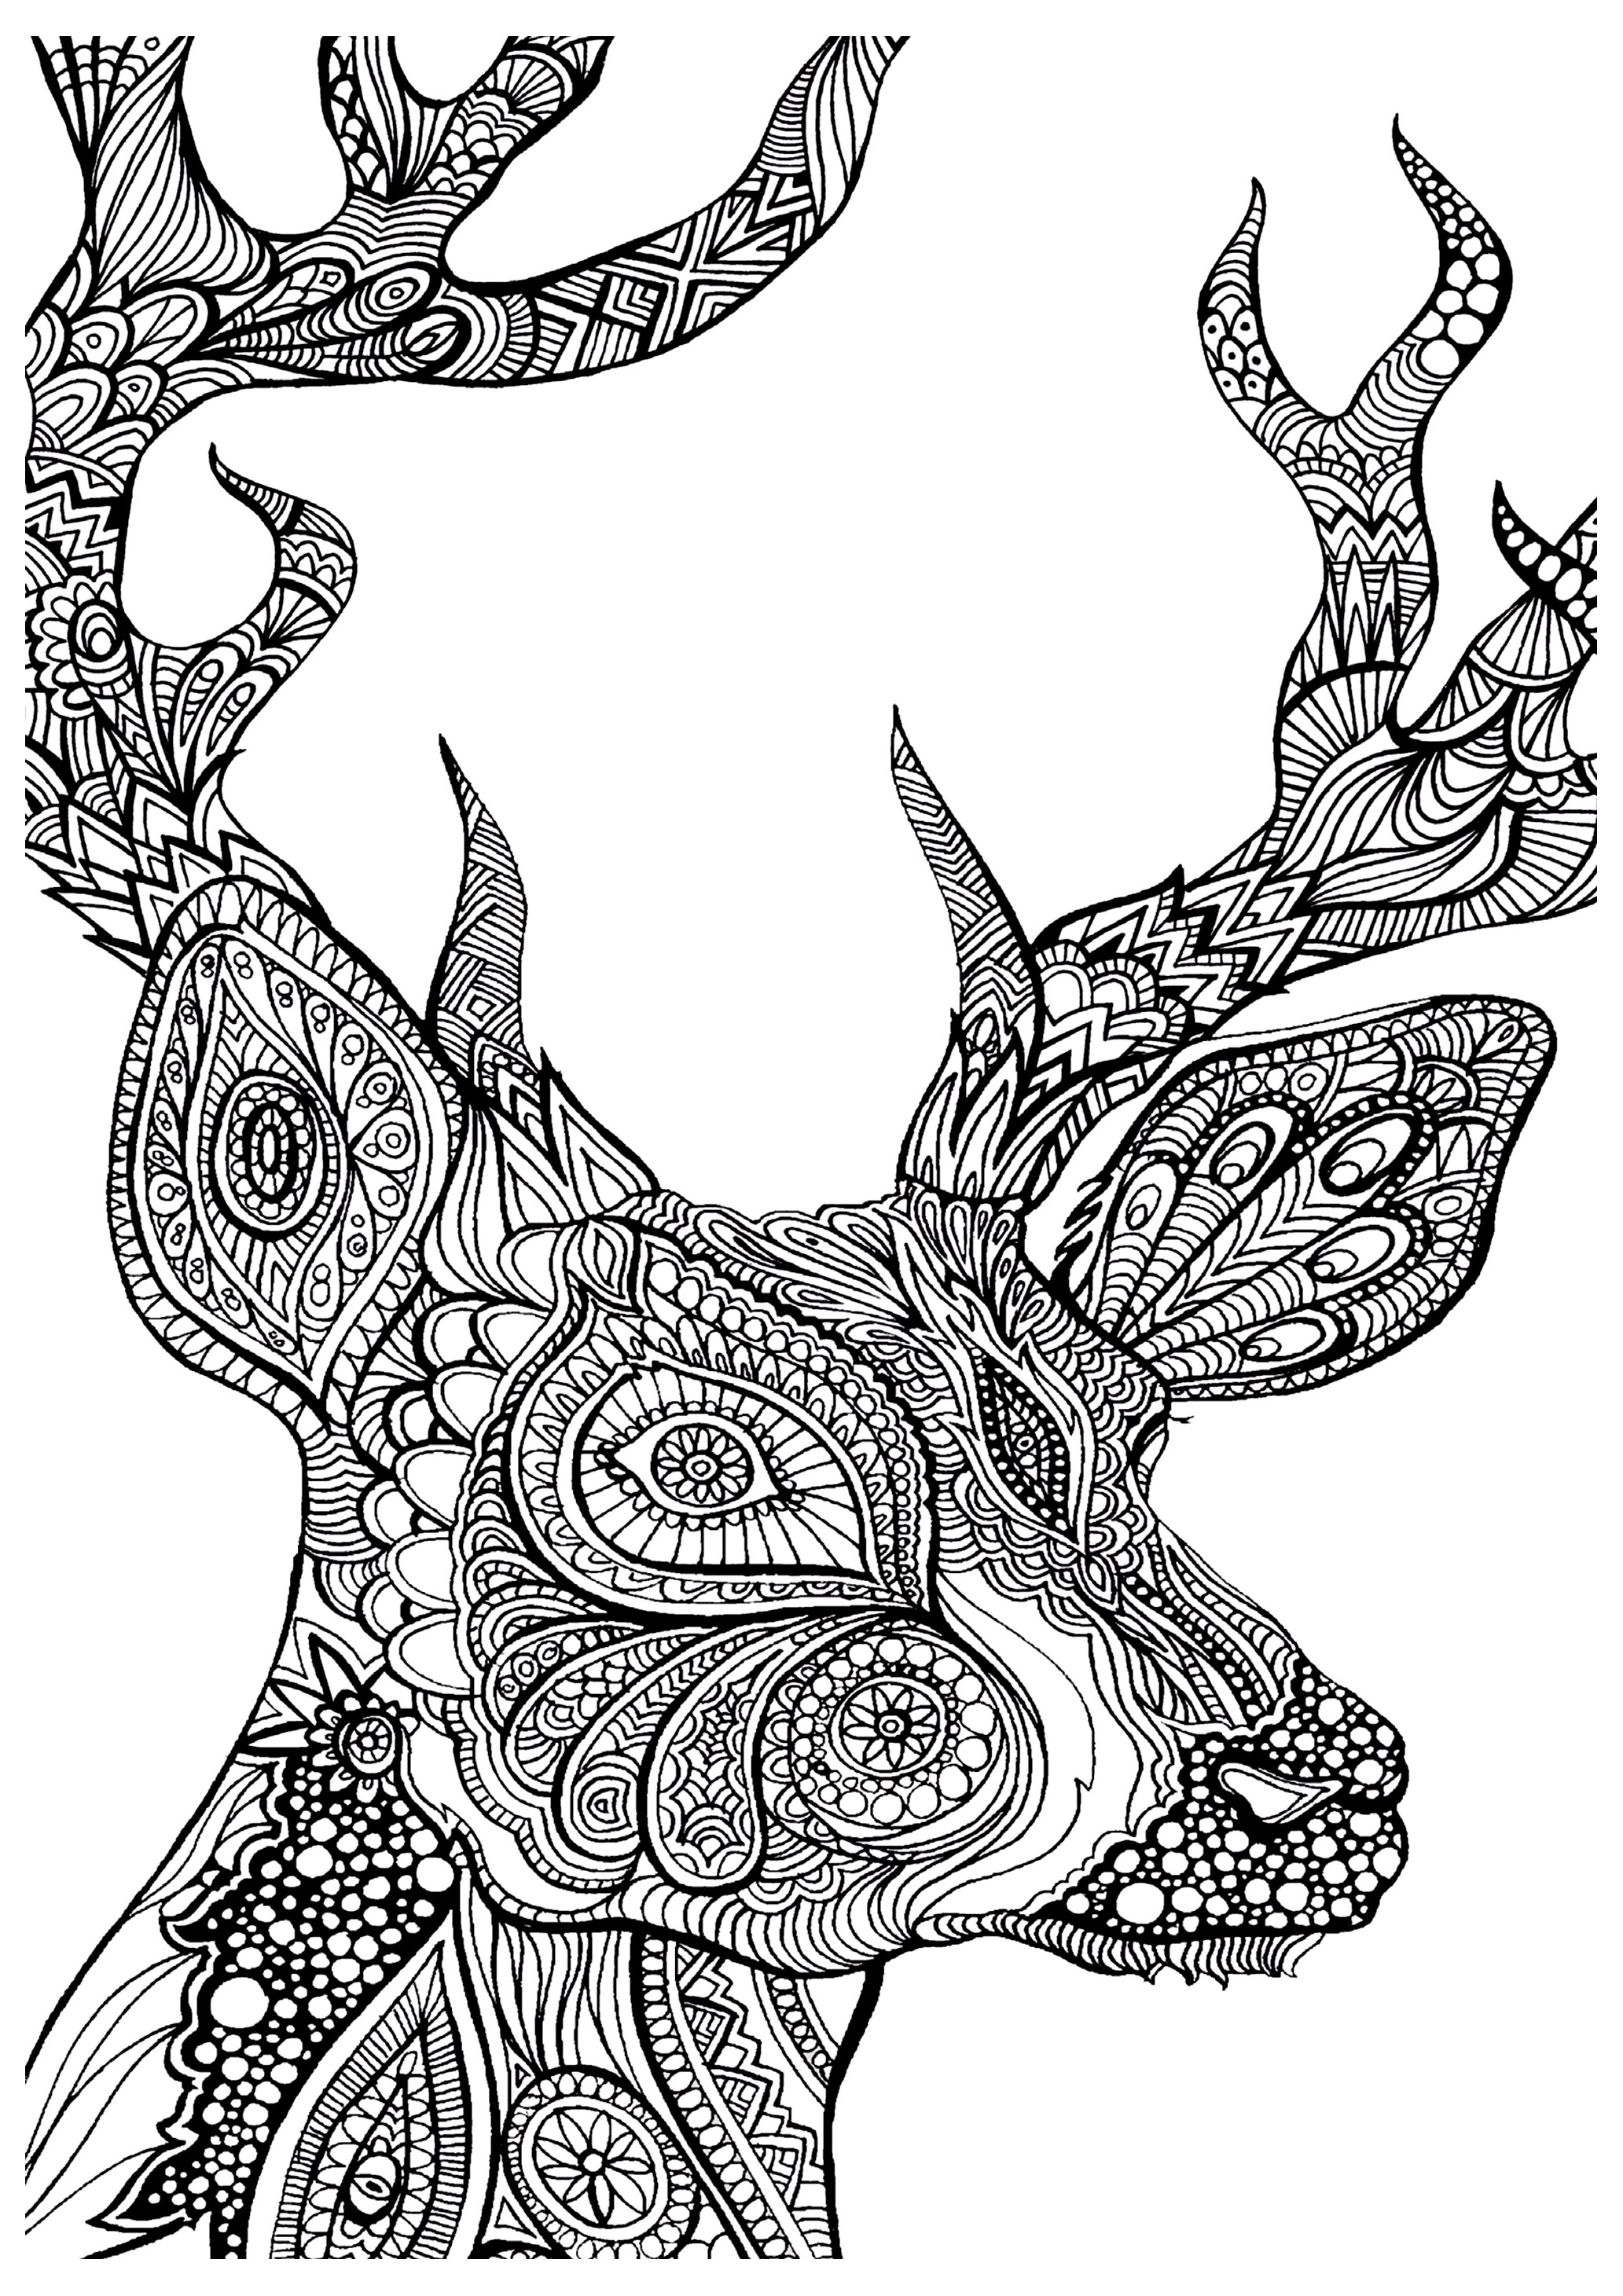 aduly coloring pages - photo#3